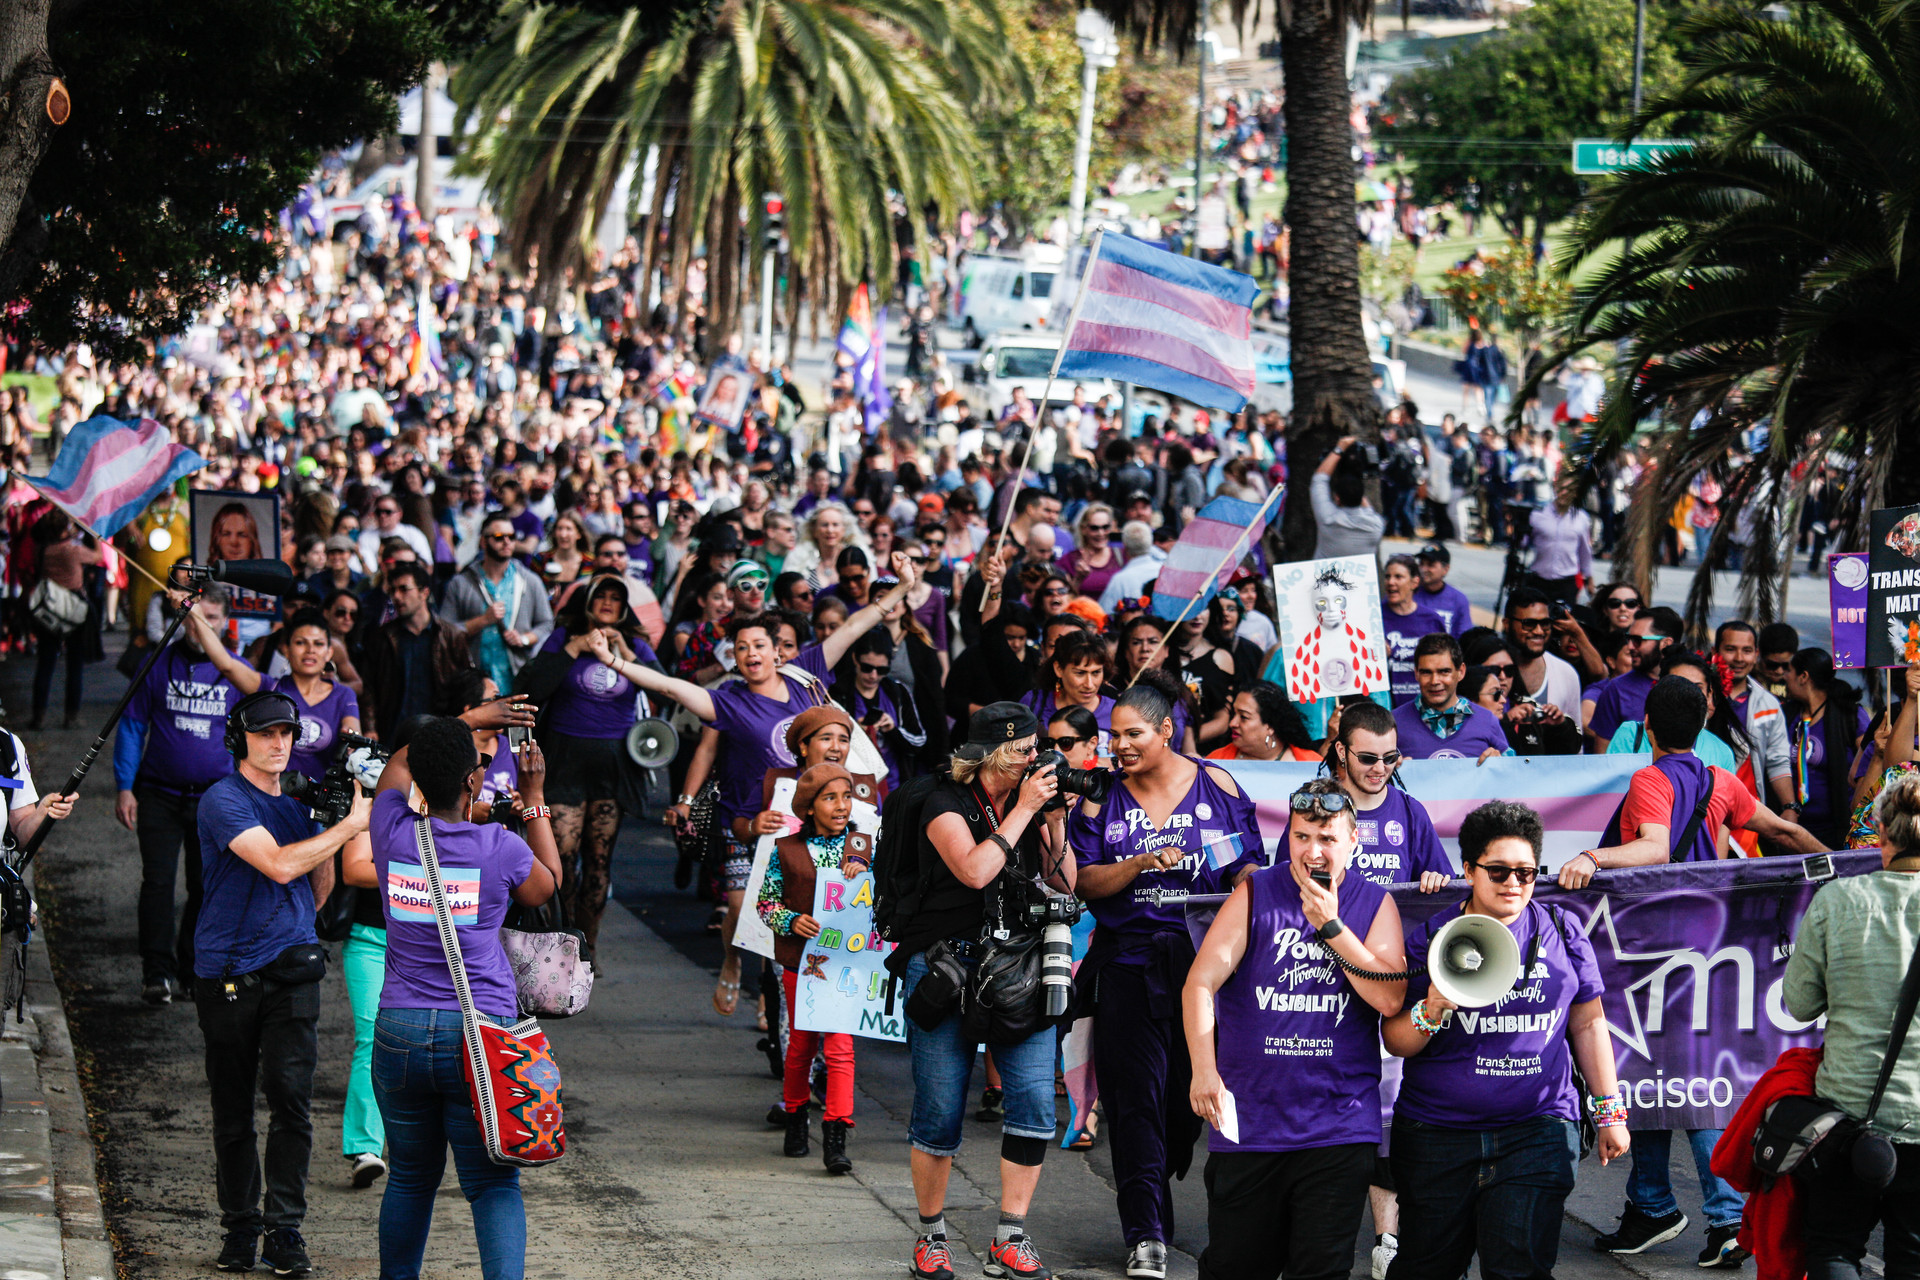 Thousands of people celebrated during San Francisco's Trans March.